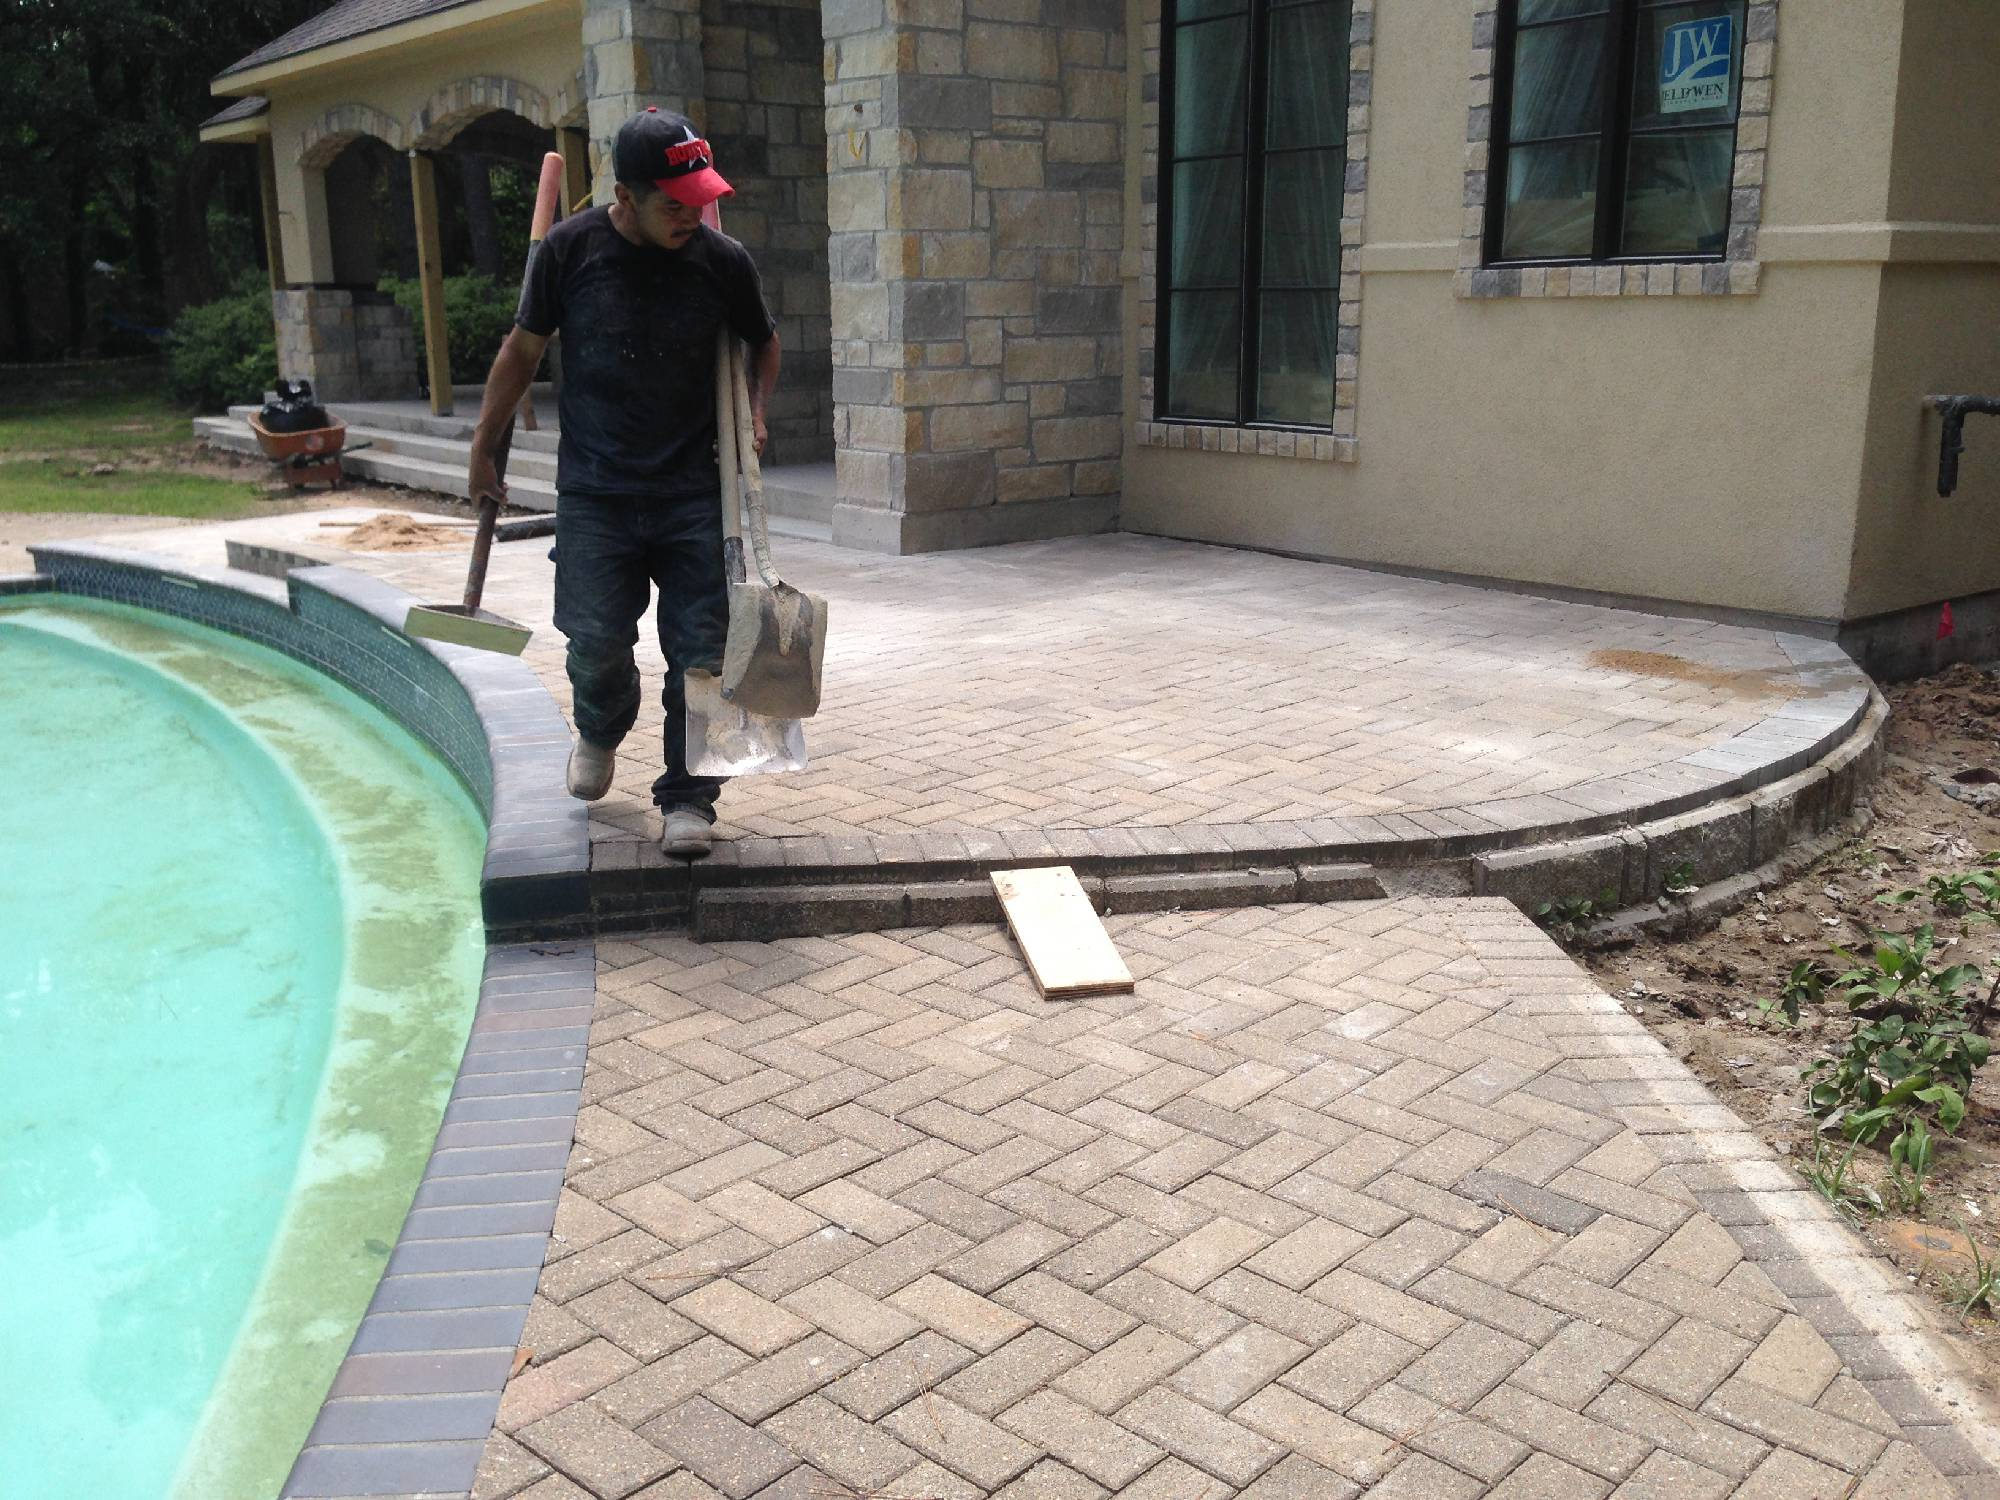 Drainage Houston Heights Irrigation And Drainageheights